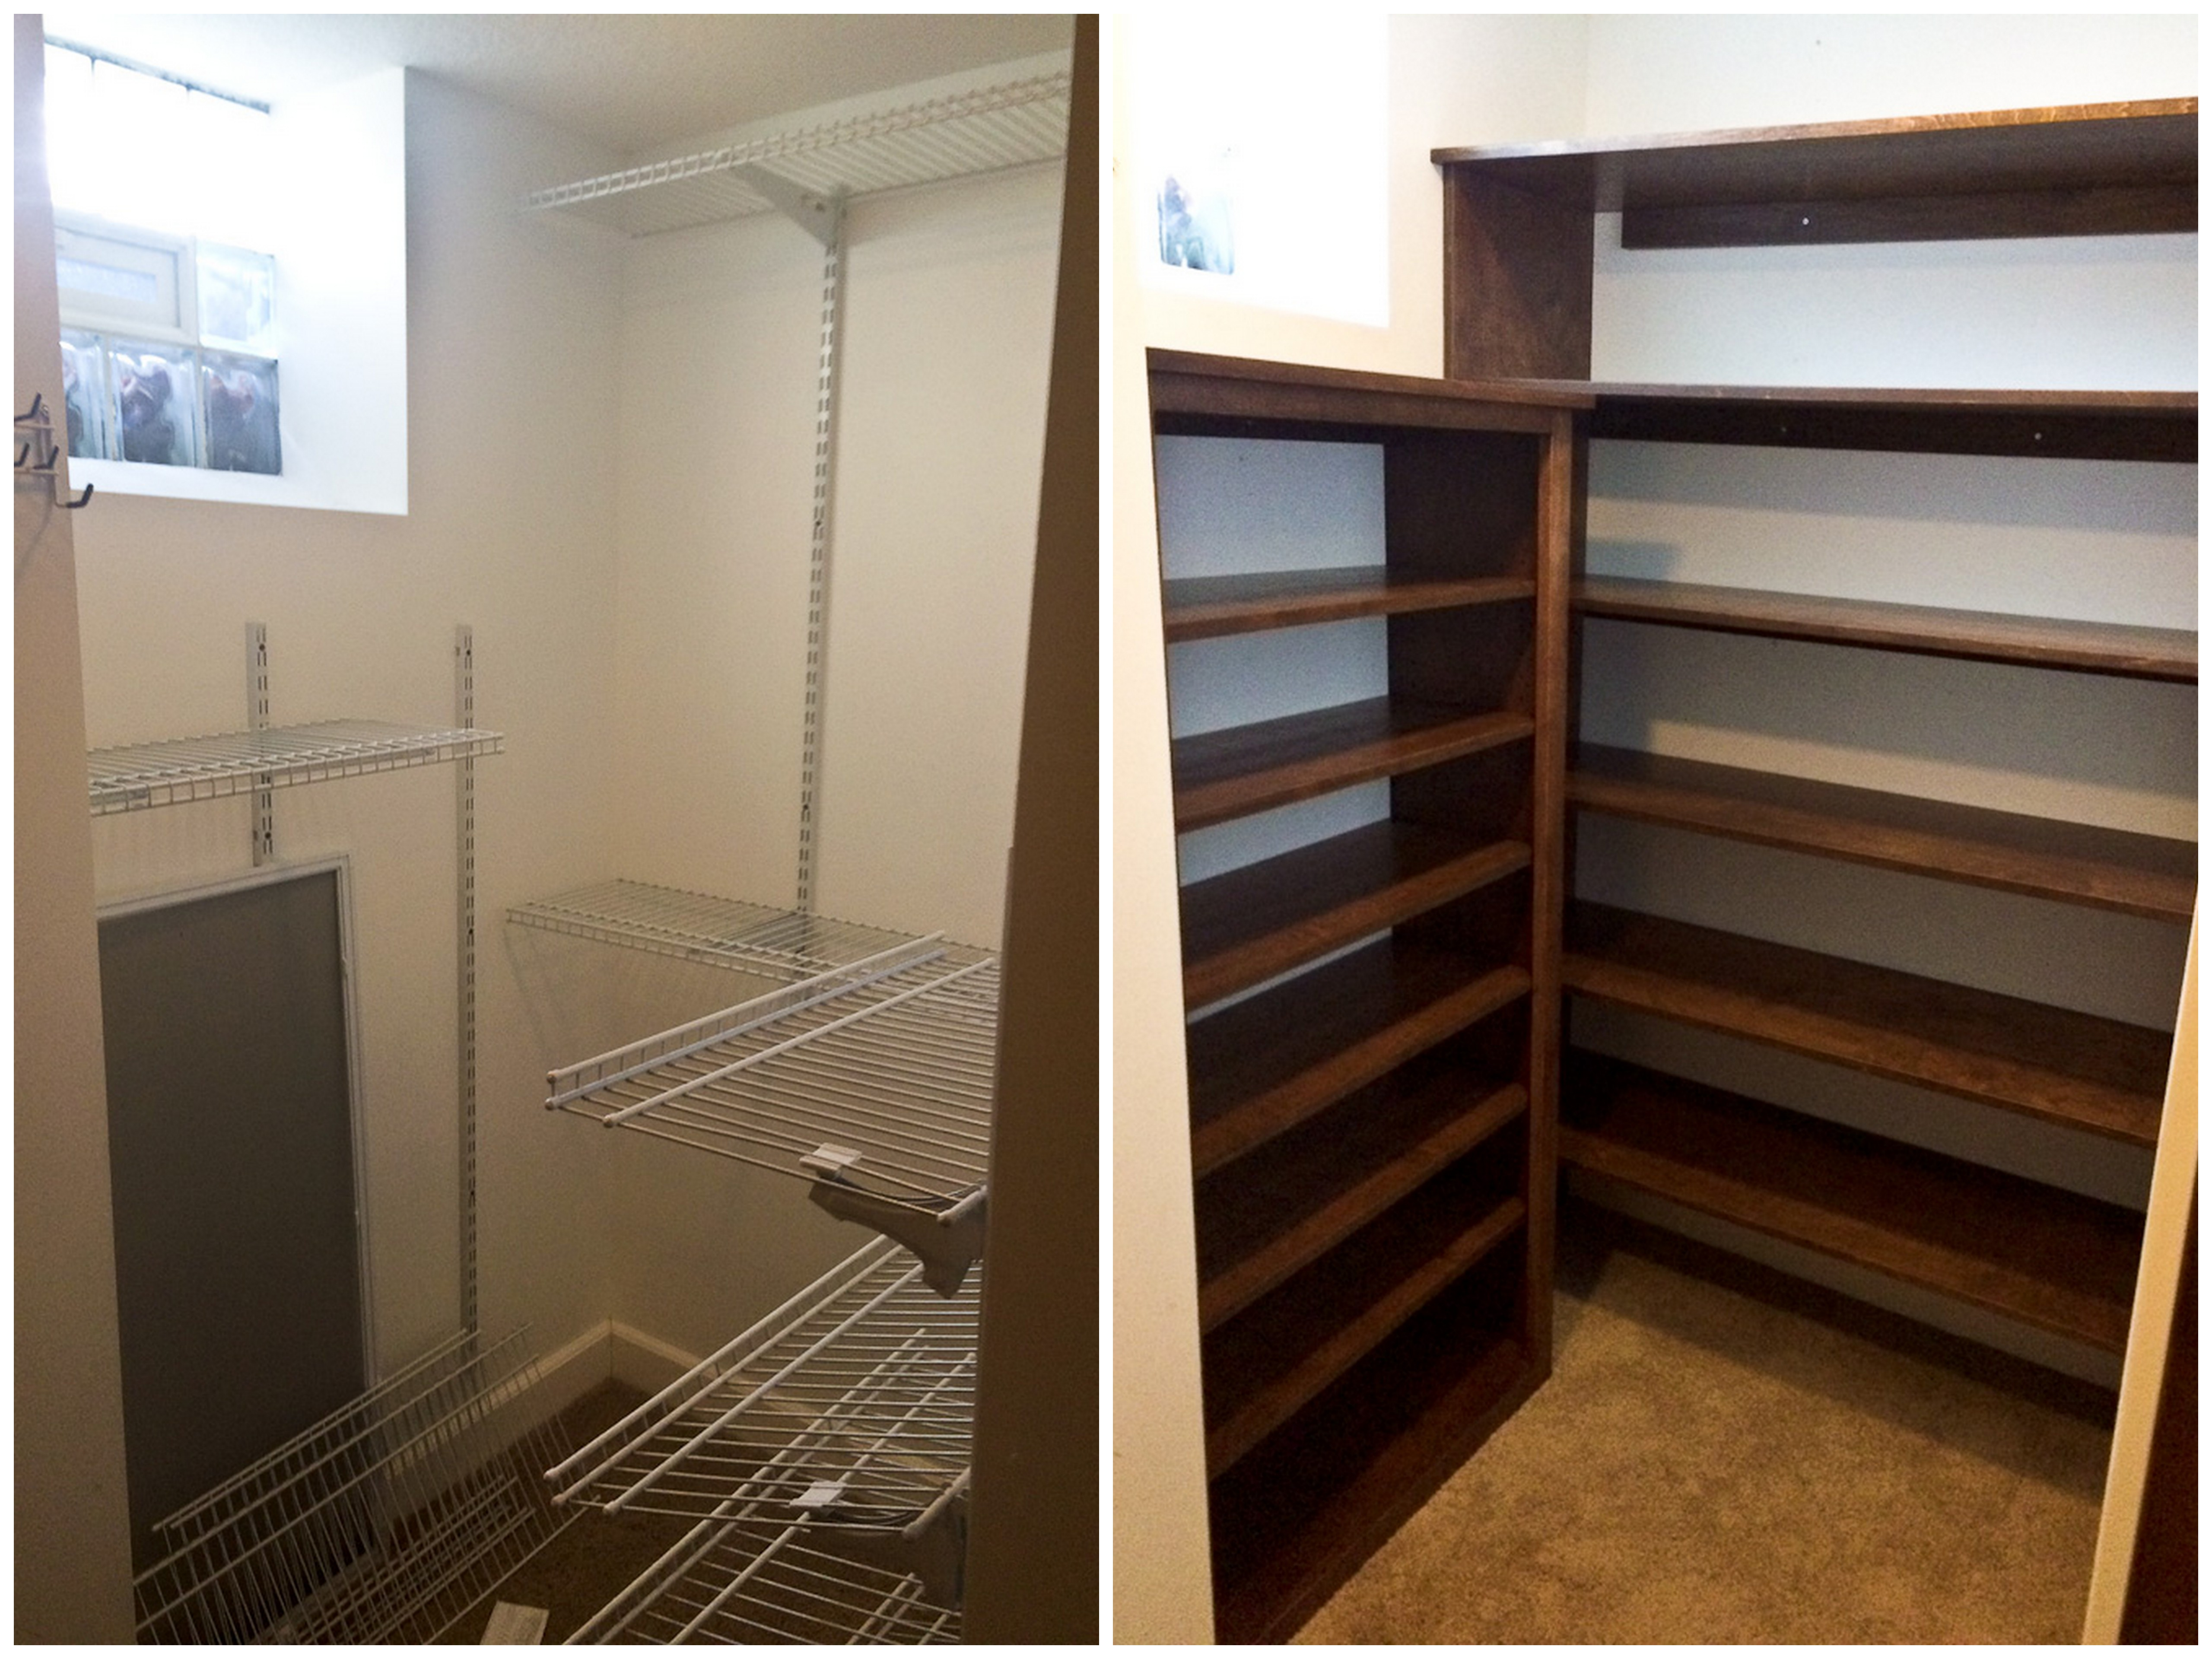 Excellent A Better View Of The Shoe Shelves Clean And Empty Closet C With